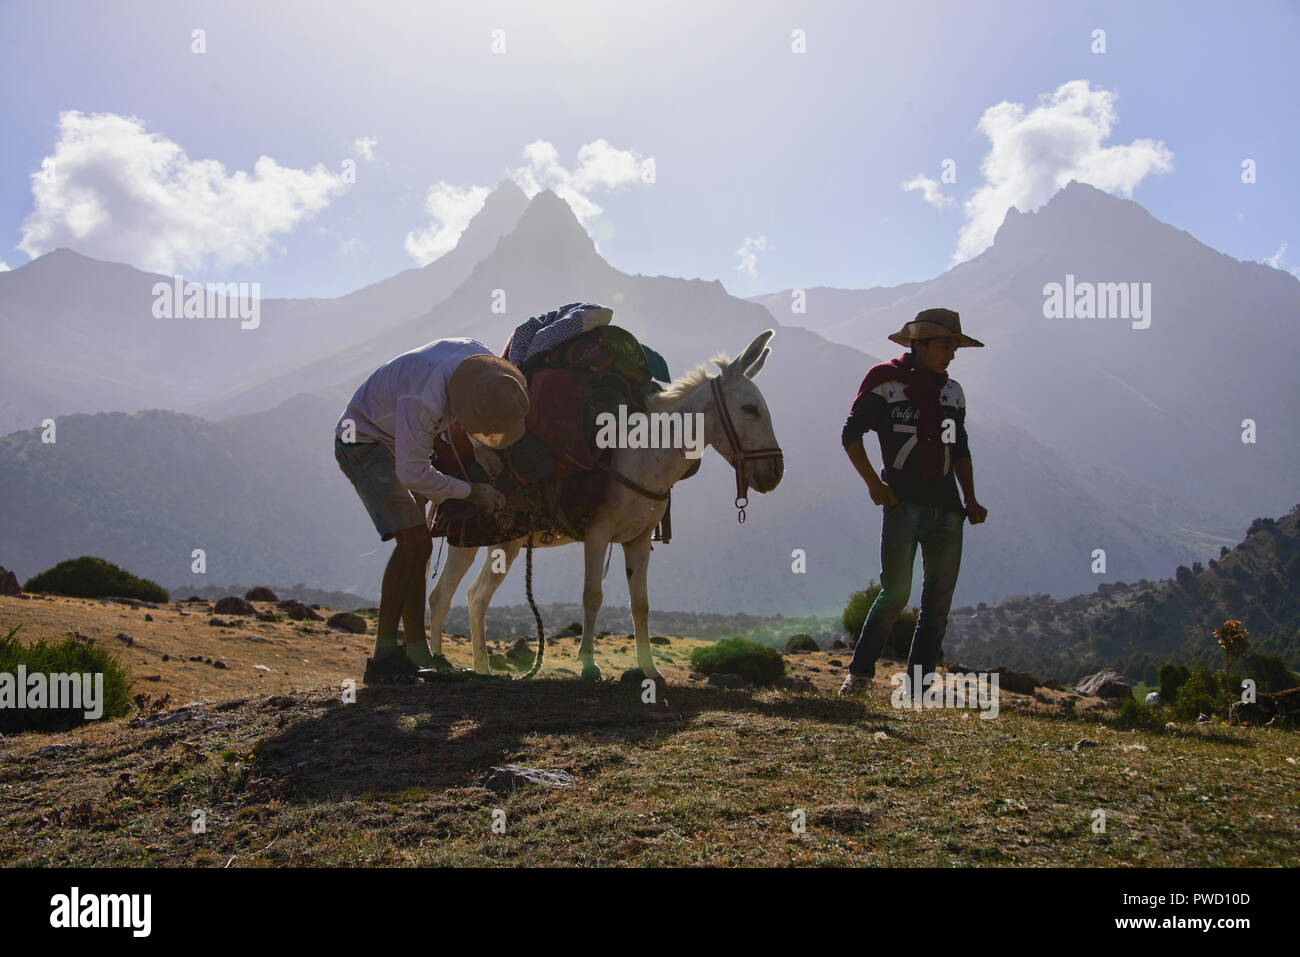 Donkey trekking in the beautiful Fann Mountains, Tajikistan - Stock Image